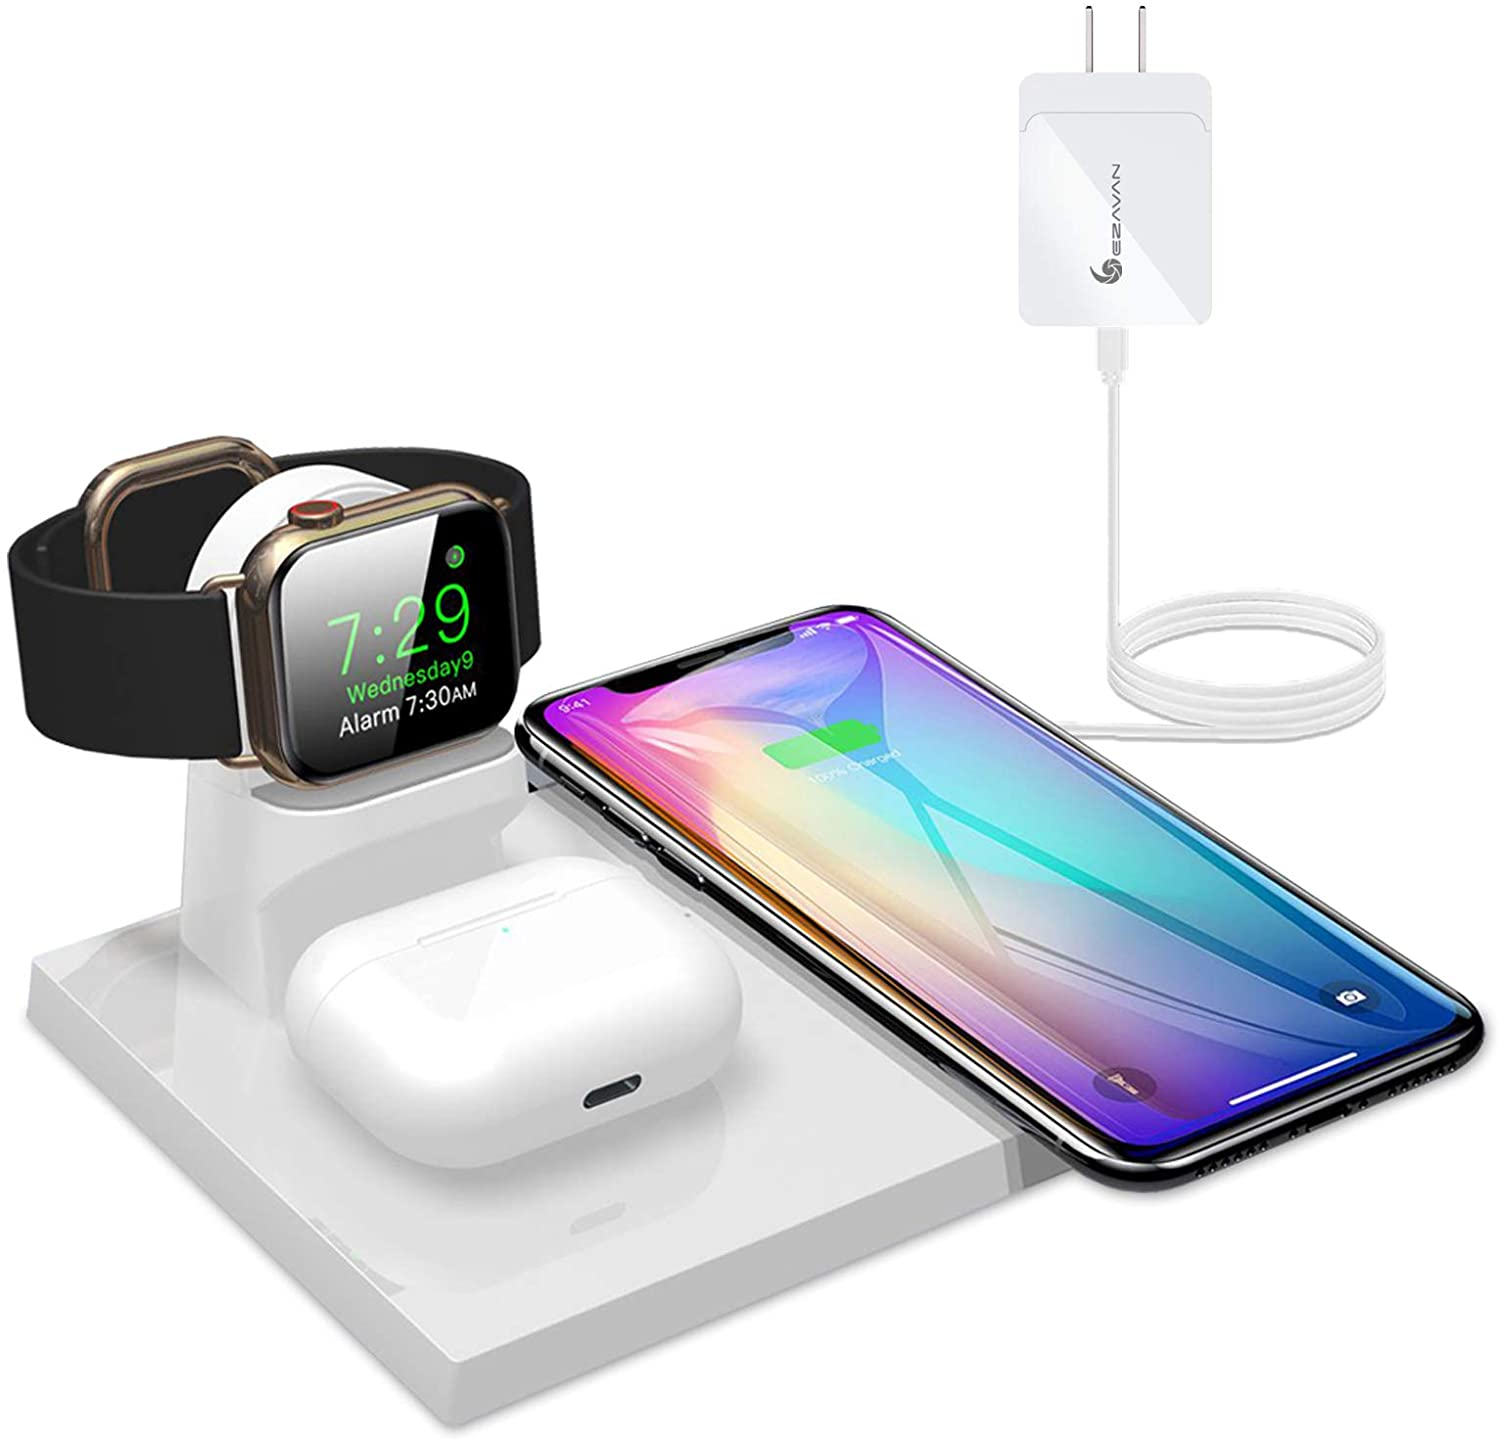 Ezavan 15W Wireless Charging Station for Apple, 3-in-1 Fast Wireless Charger Pad with QC3.0 Adapter for iPhone 11 Pro Max/Xs Max/XS/XR/8, Apple Watch, Airpods and More TWS